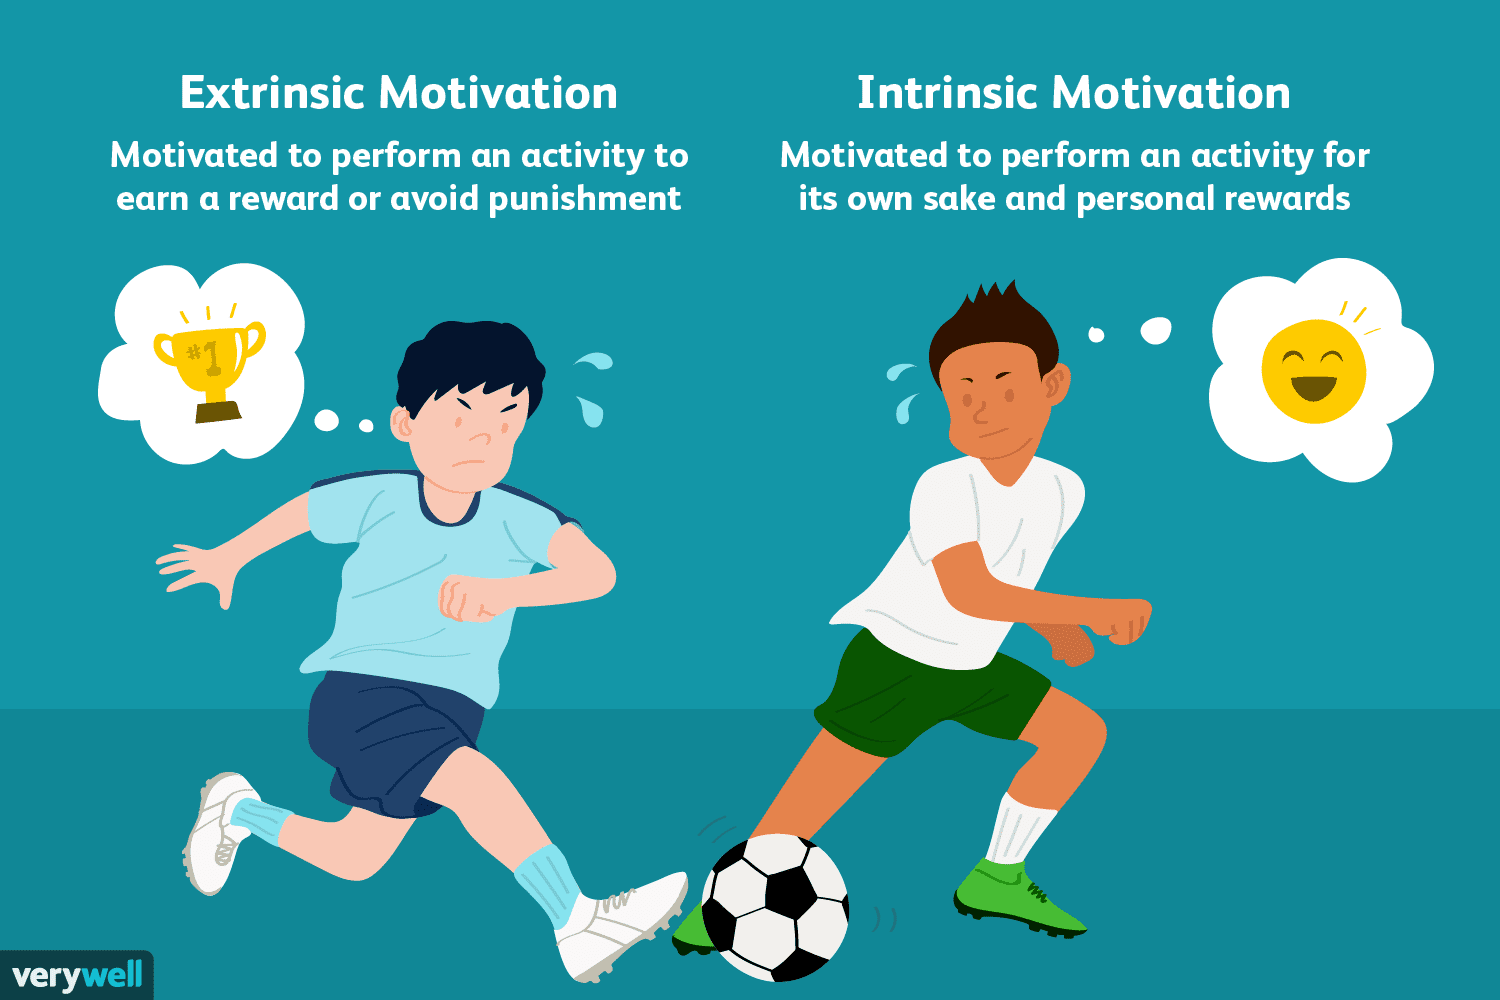 Extrinsic Vs Intrinsic Motivation Differences Bet...